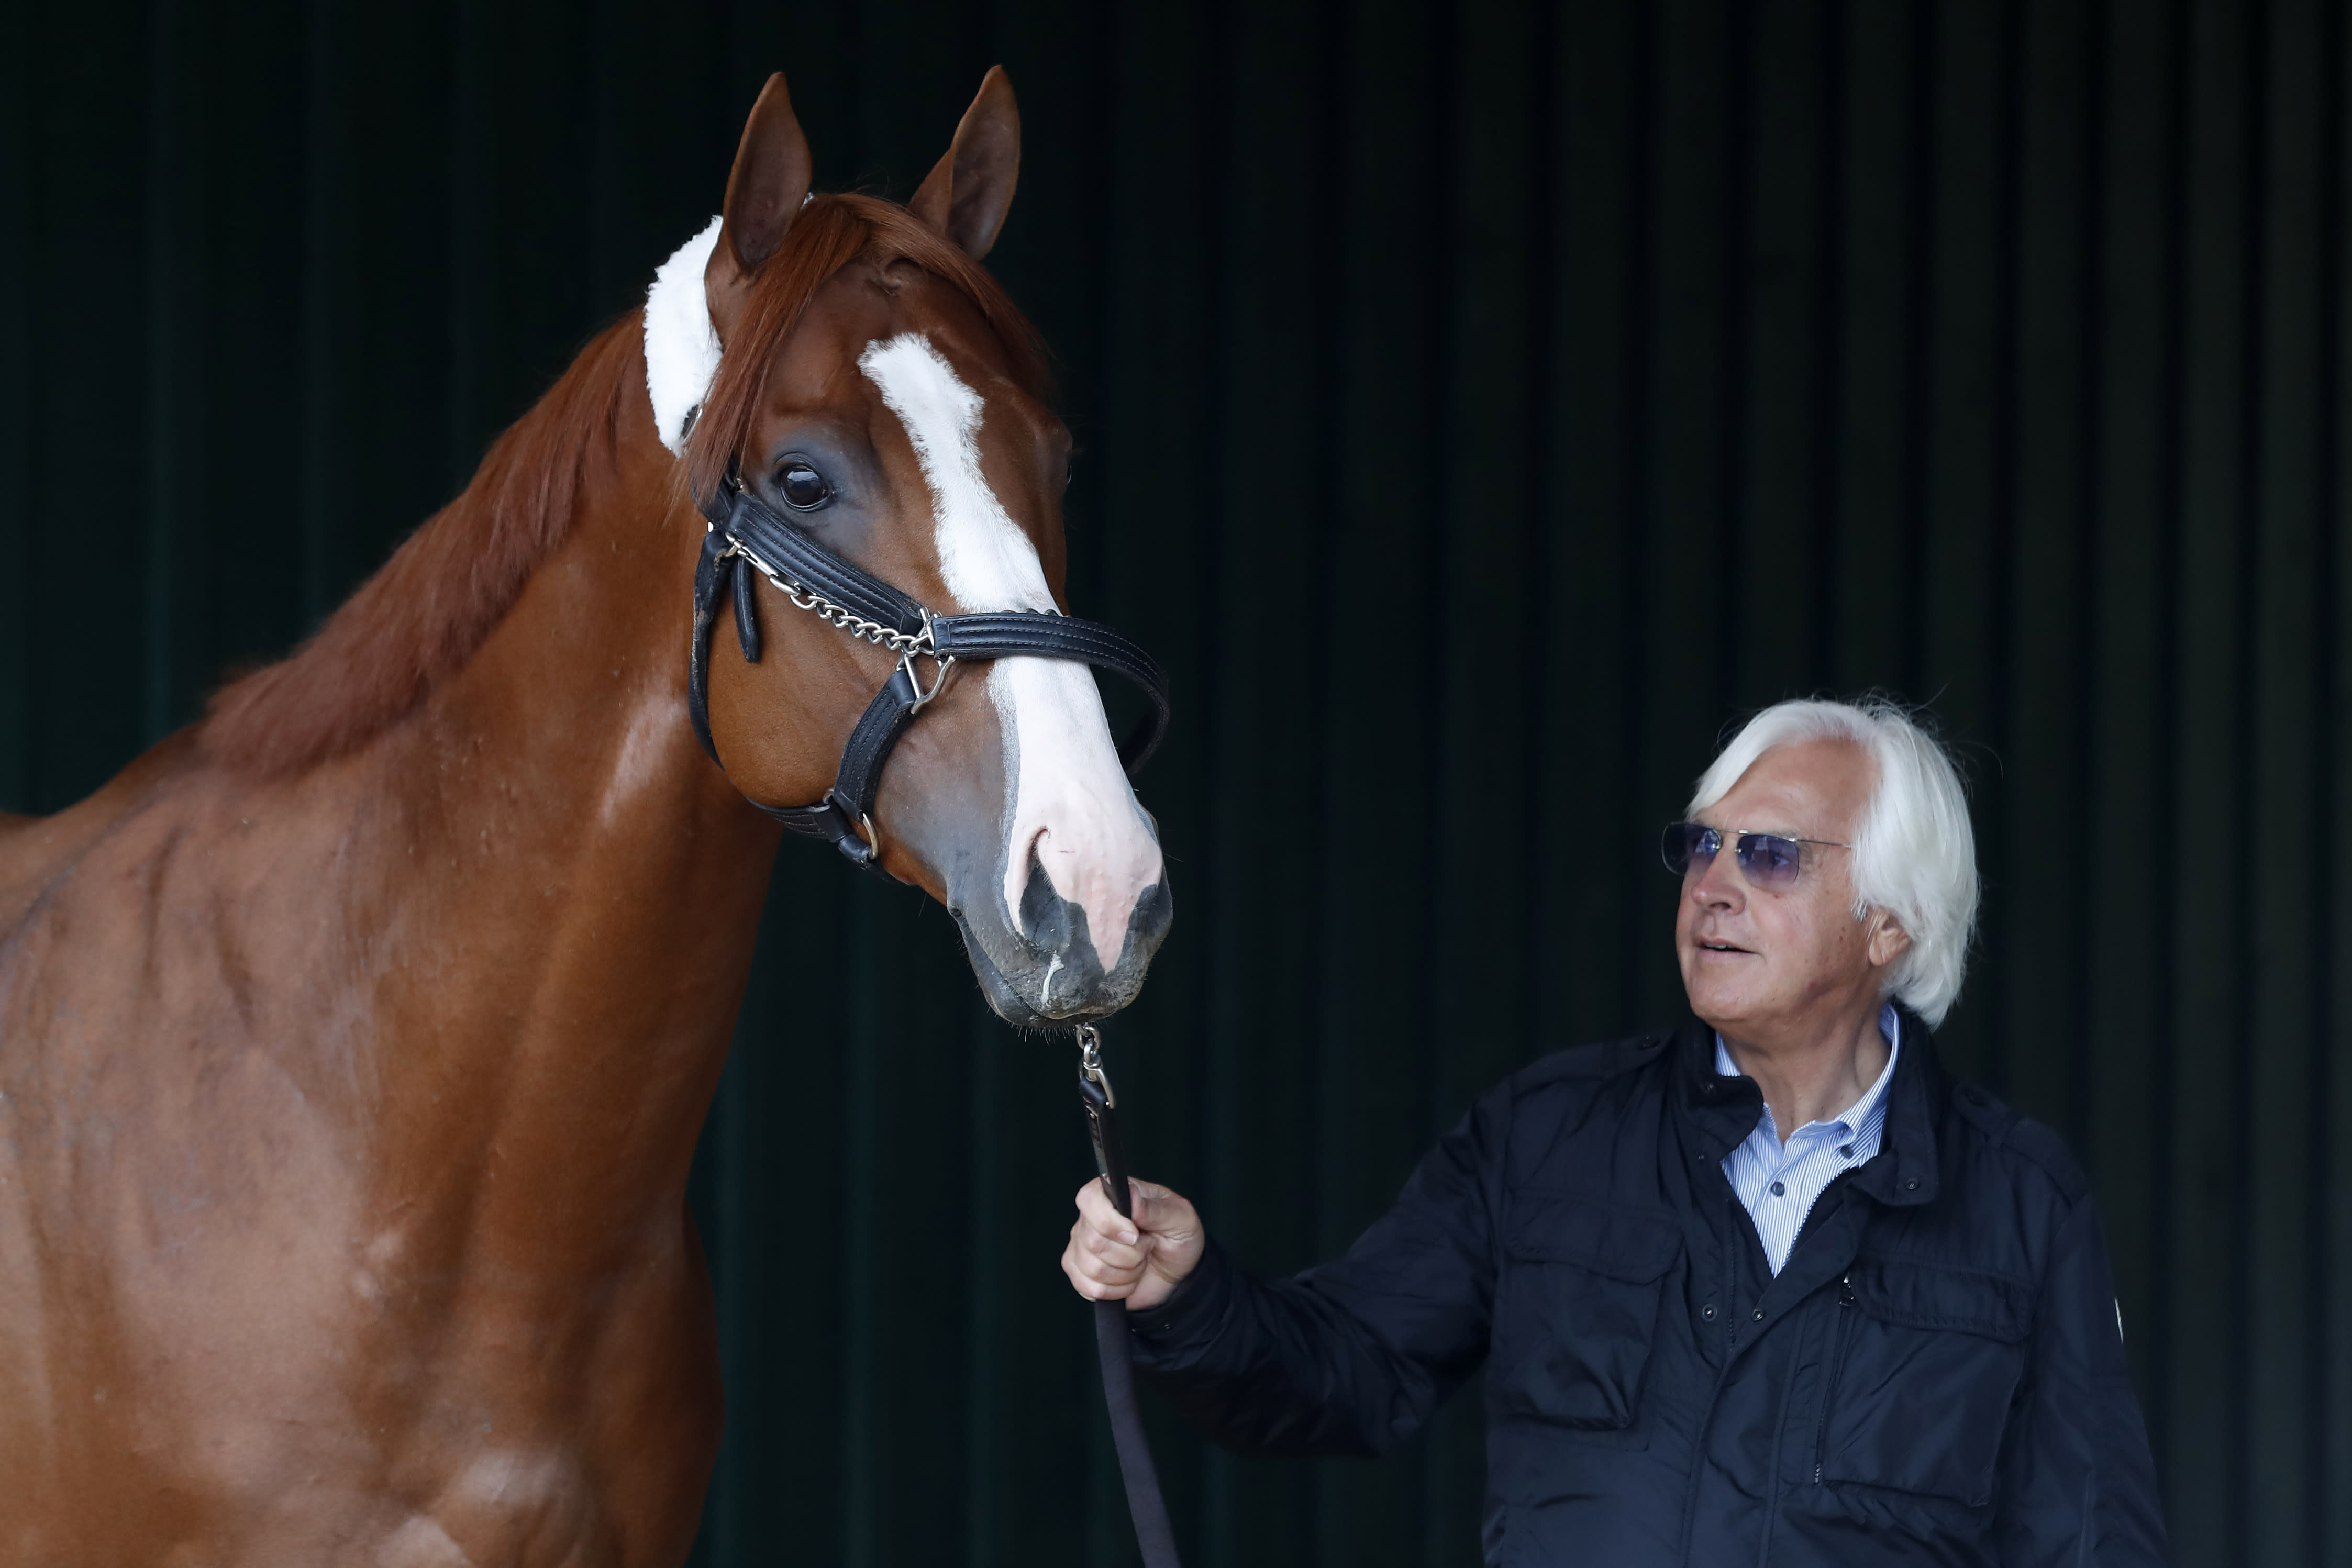 Justify drug controversy pushes horse racing toward the end - Yahoo Sports